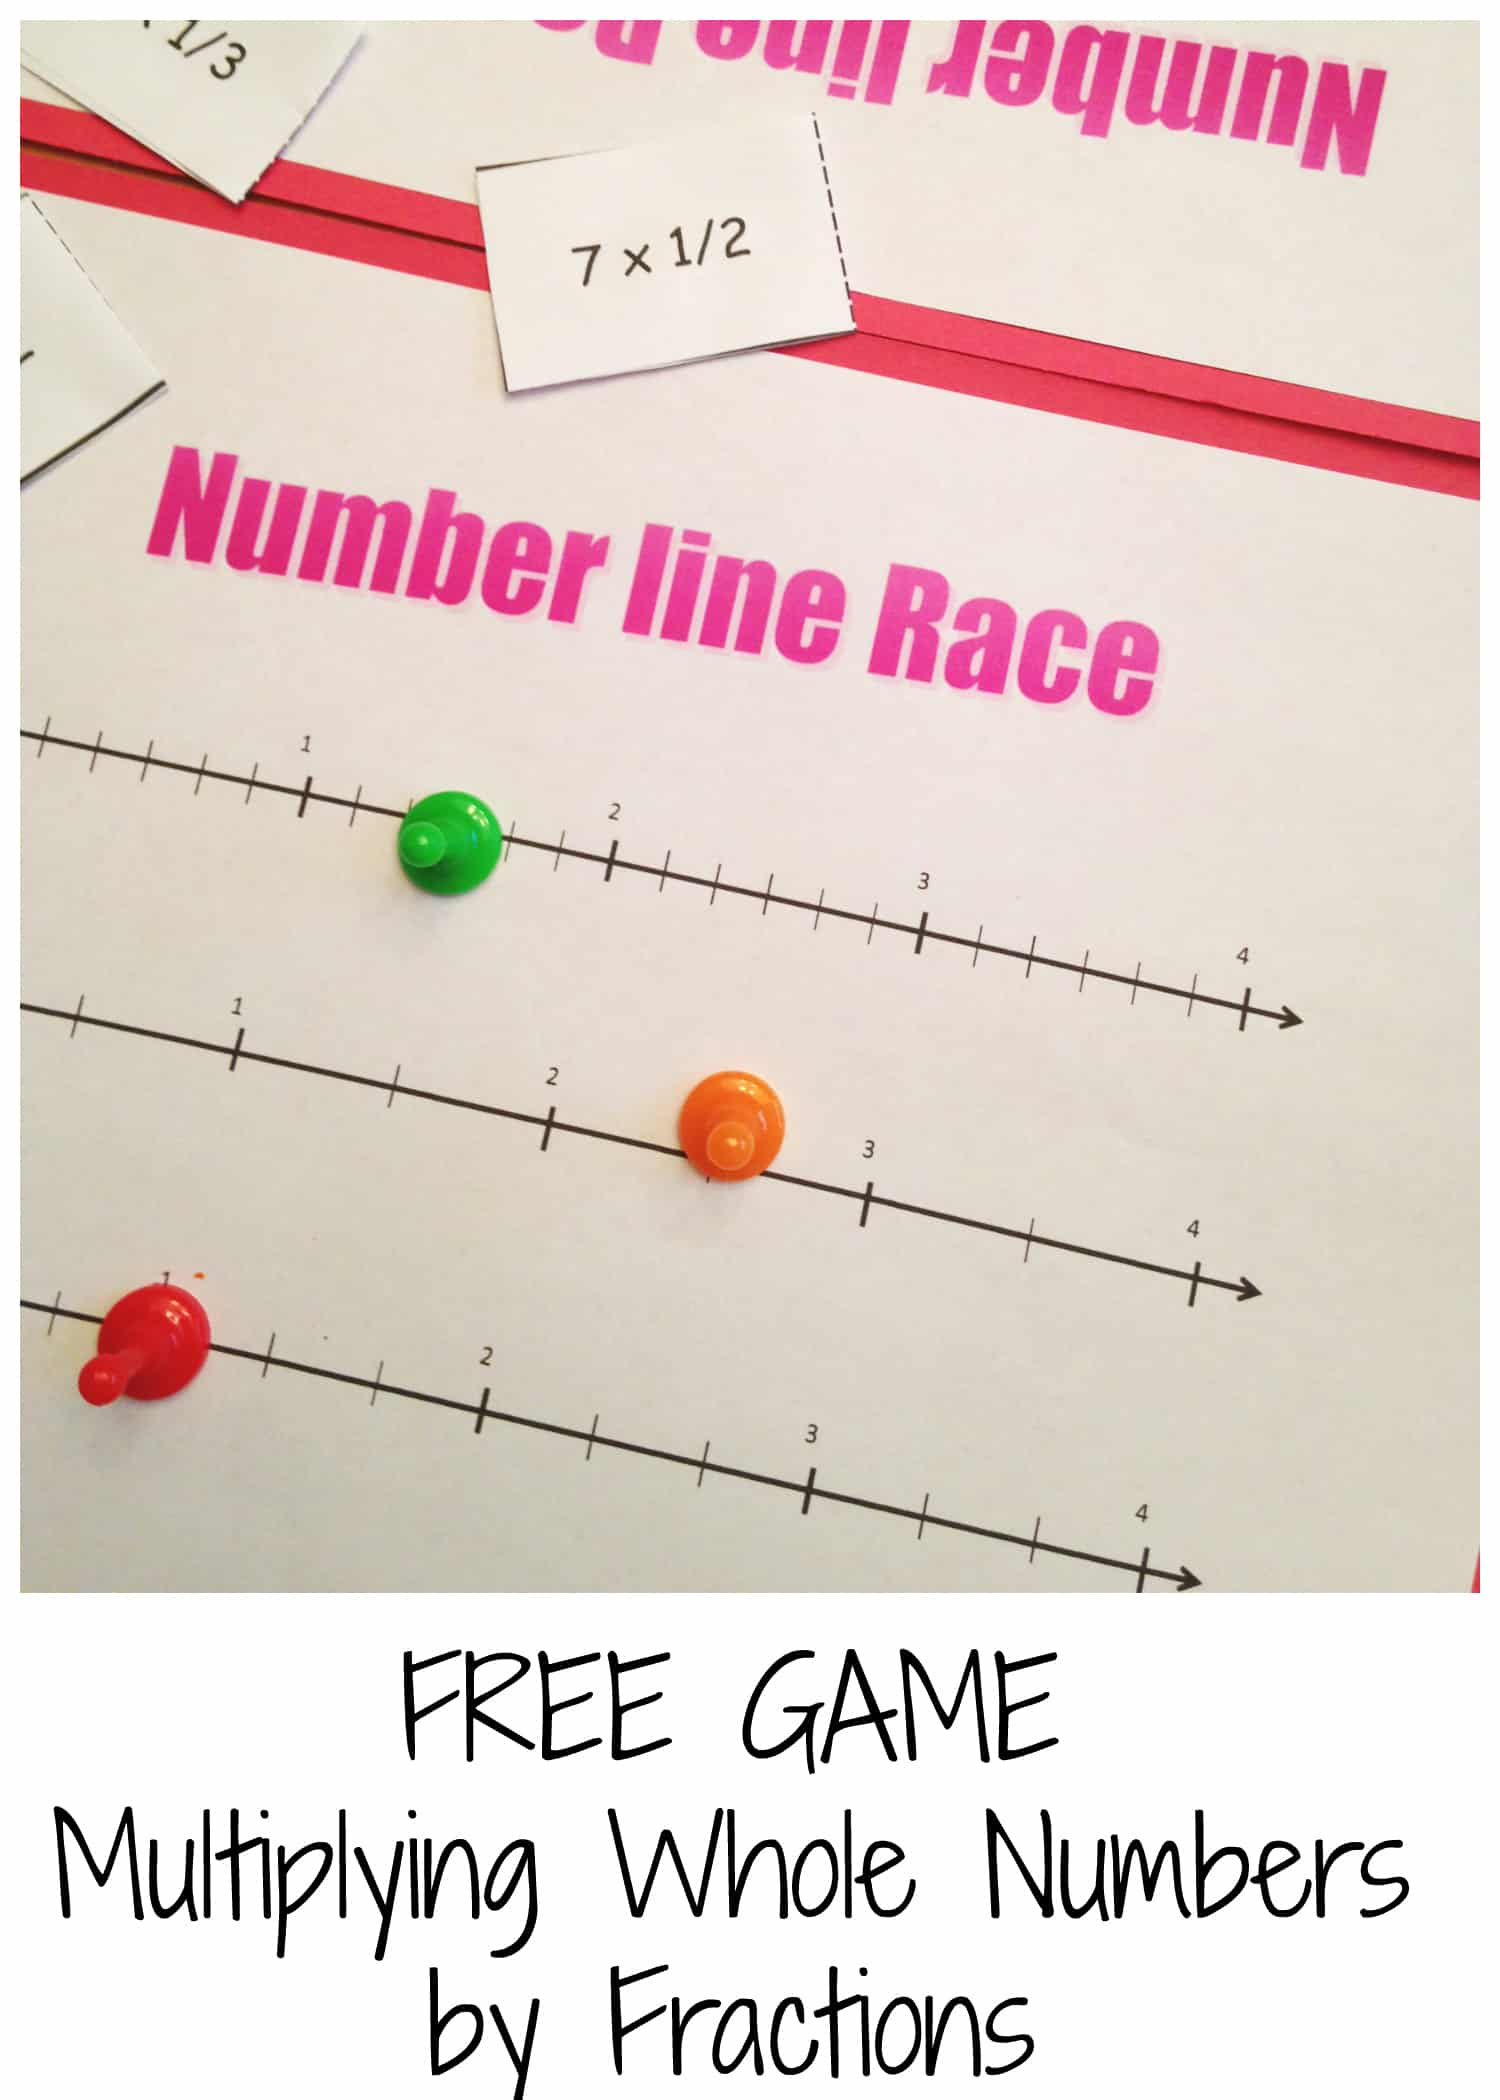 Drawing Number Lines With Fractions : Multiplying fractions on a number line game